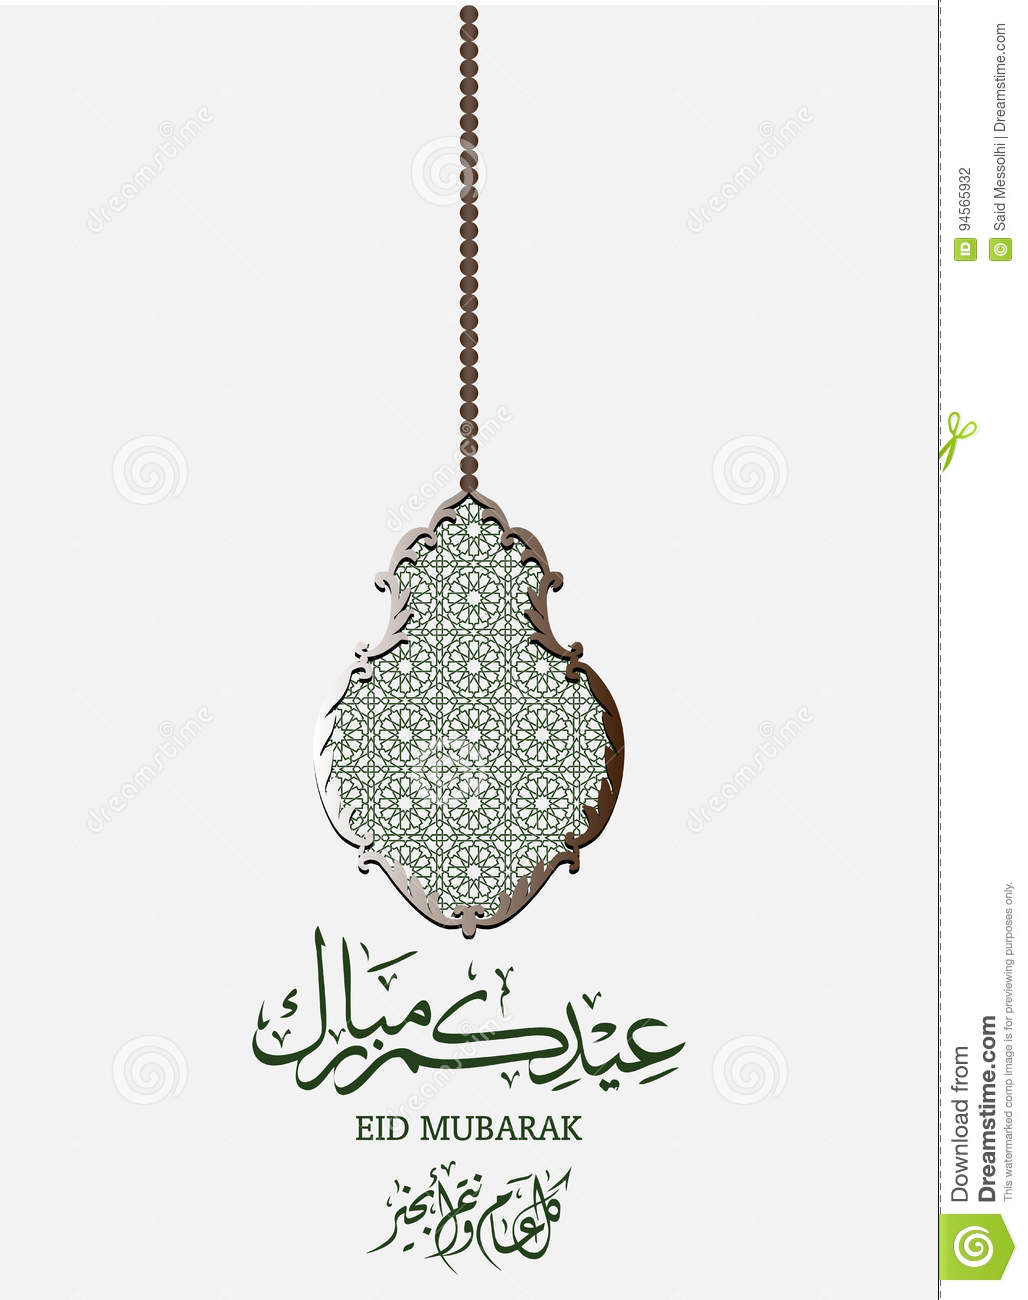 Must see Beautiful Eid Al-Fitr Decorations - greetings-card-occasion-eid-al-fitr-to-muslims-beautiful-islamic-background-arabic-calligraphy-translation-blessed-94565932  Pictures_702815 .jpg